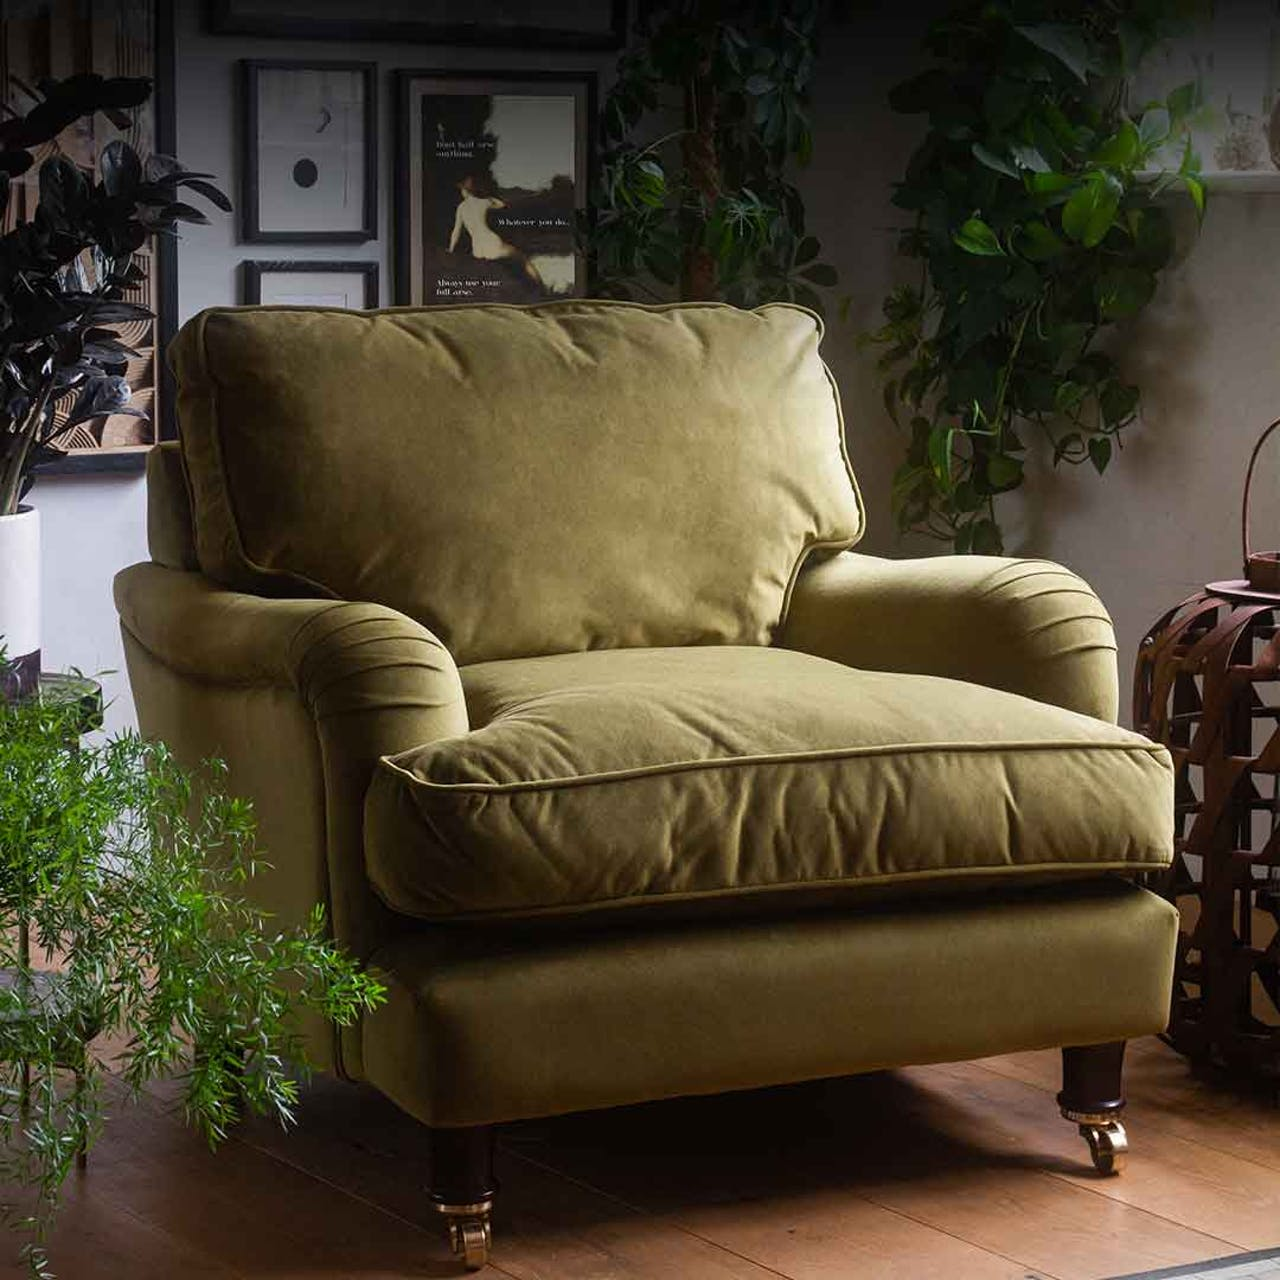 green velvet armchair in front of picture wall a plants